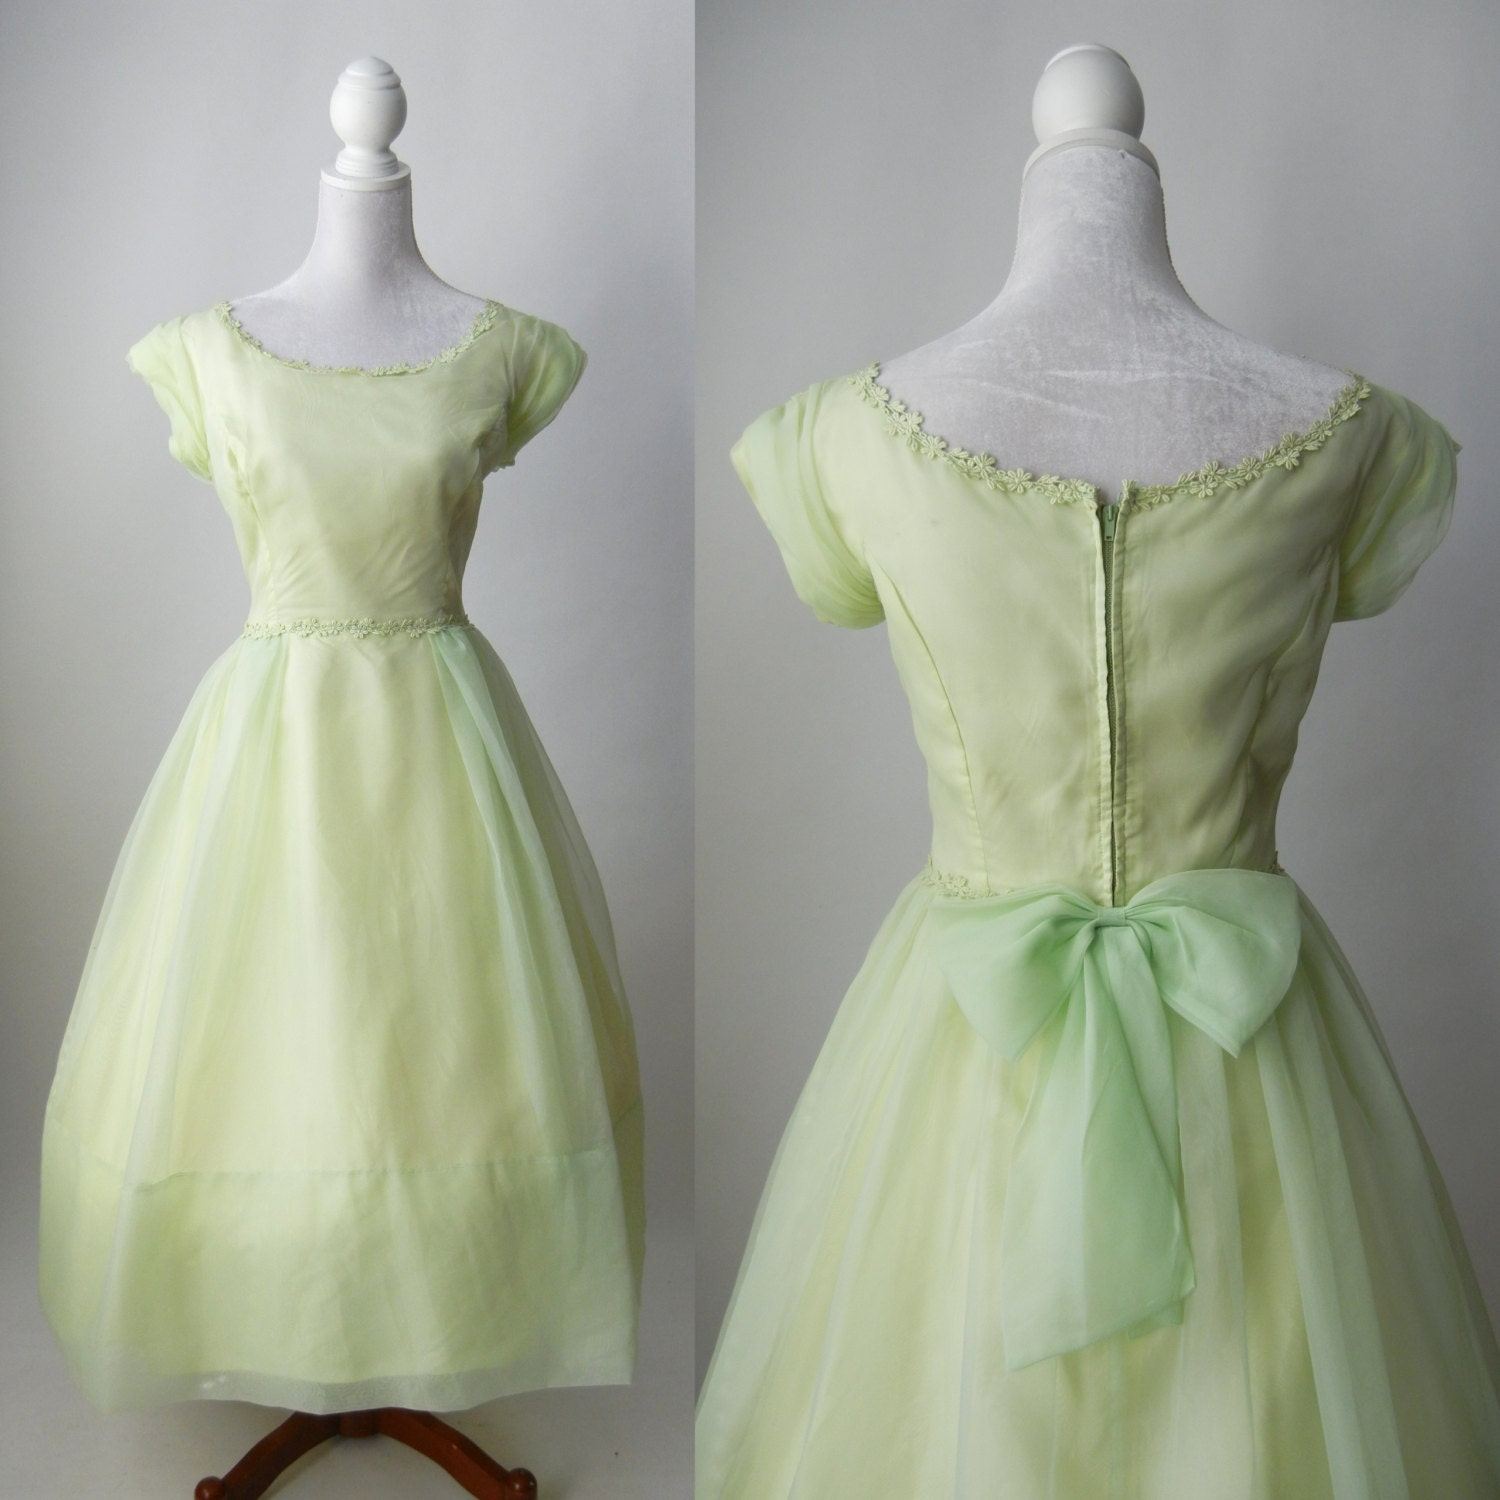 Vintage 1950s Light Green Chiffon Party Dress Prom Wedding